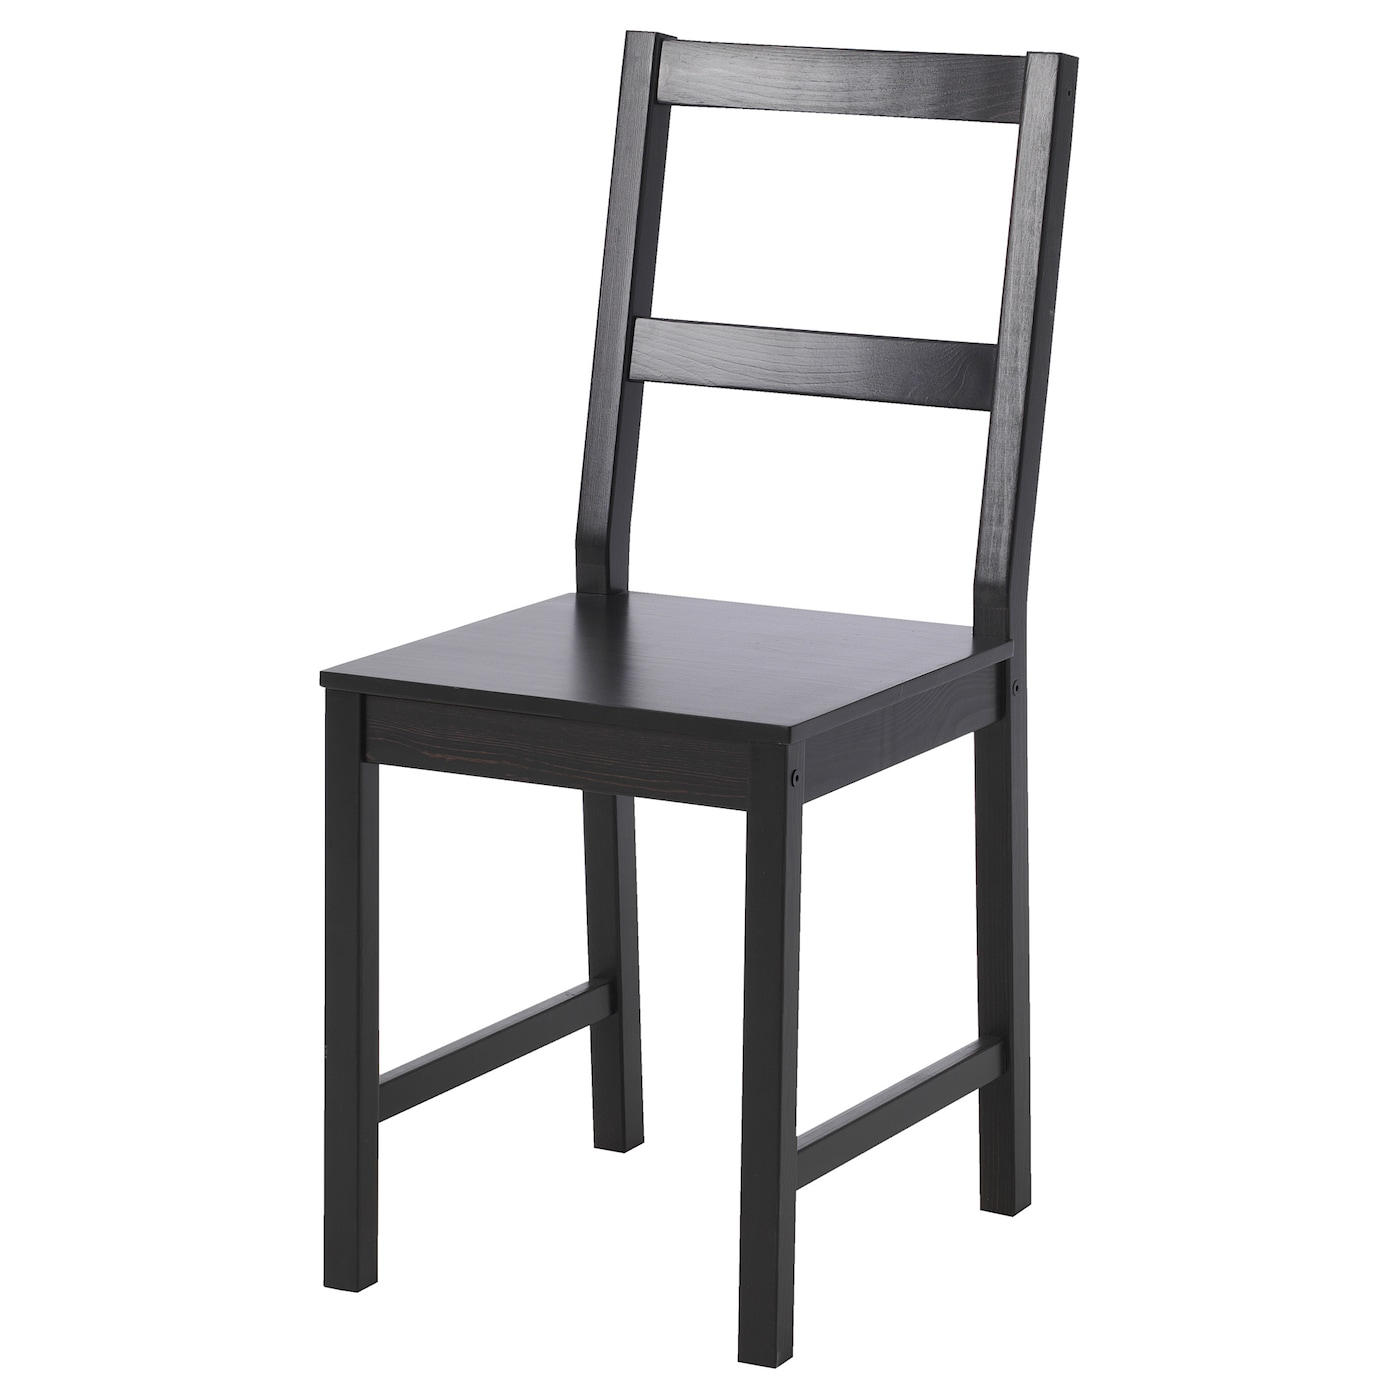 Ikea Kitchen Chairs: Upholstered & Foldable Dining Chairs